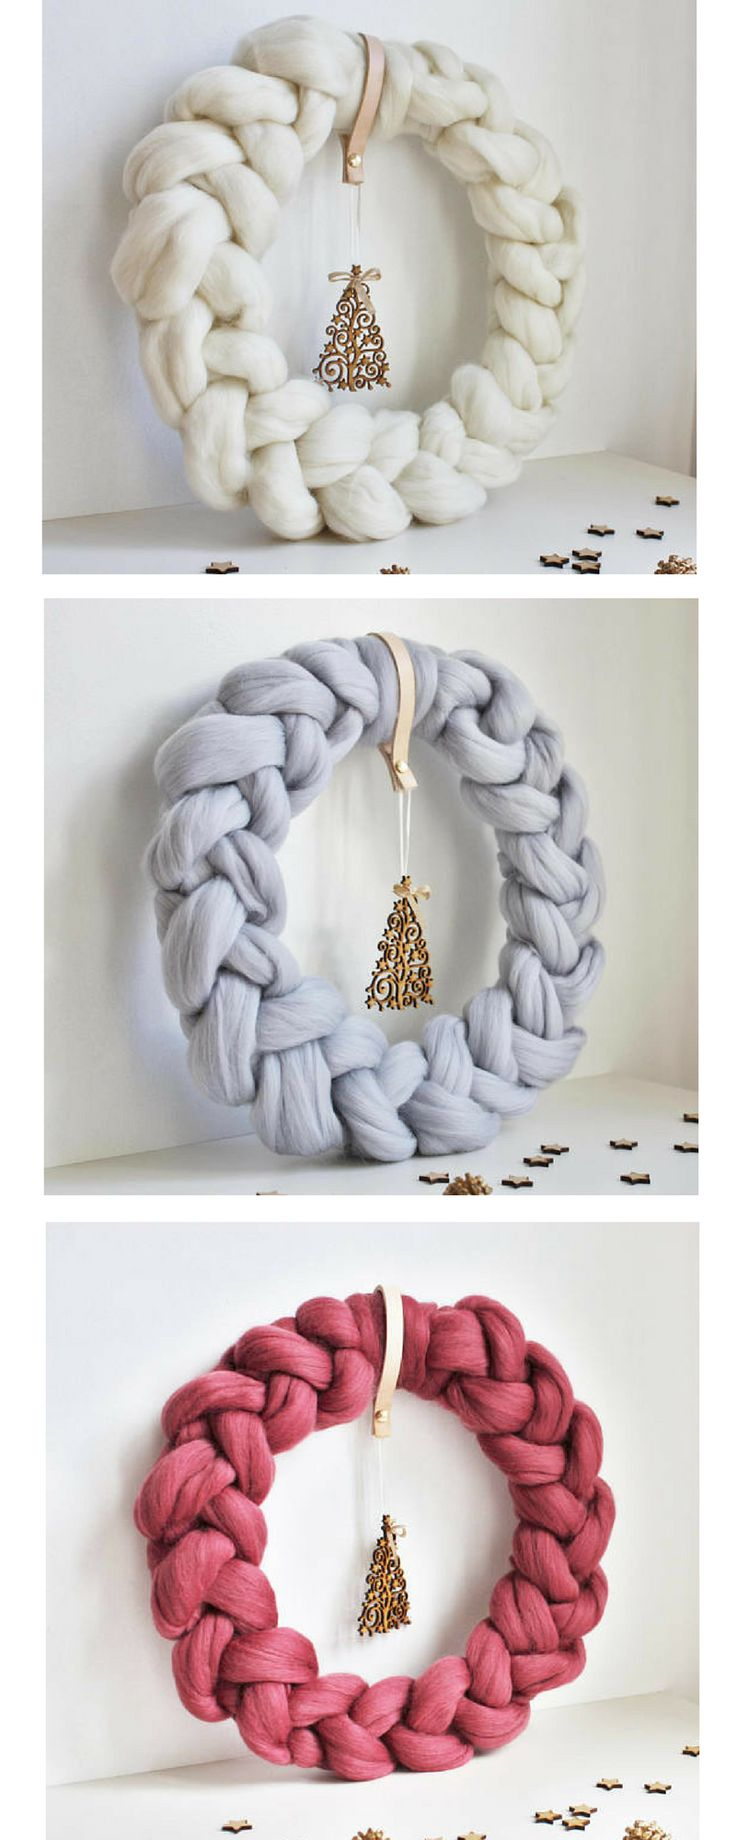 I love this cozy, soft Scandinavian wreath. The little filigree Christmas tree hanging makes it even cuter #christmaswreath #scandinavianchristmas #cozychristmas #christmasdecor #commissionlink